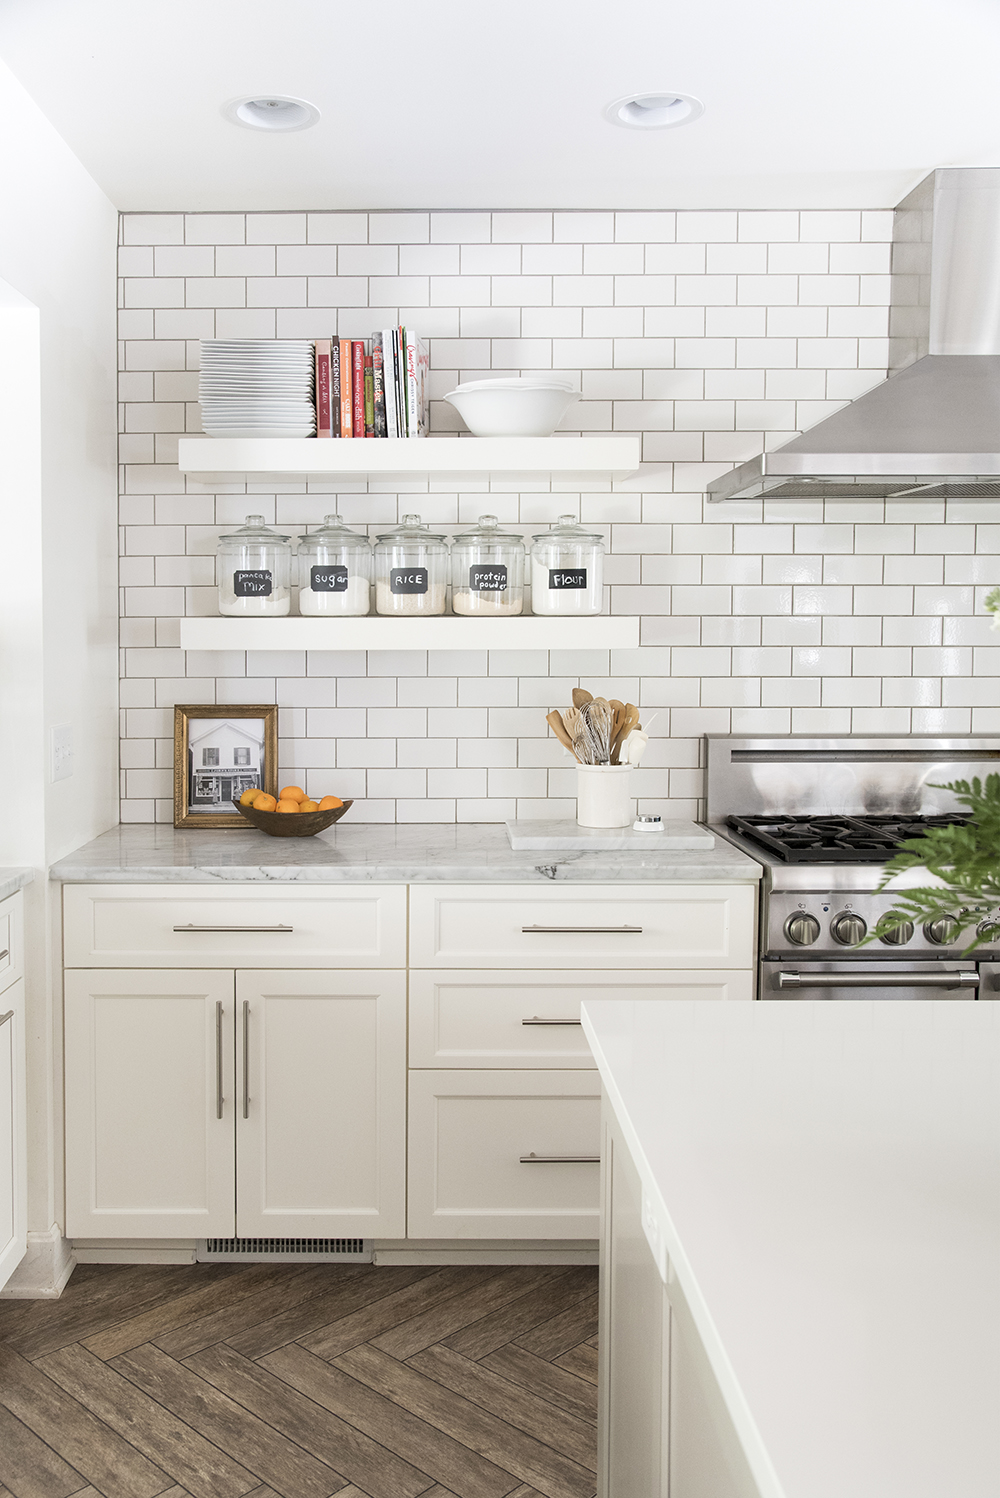 How to Incorporate Floating Shelves in Your Kitchen - Room ...